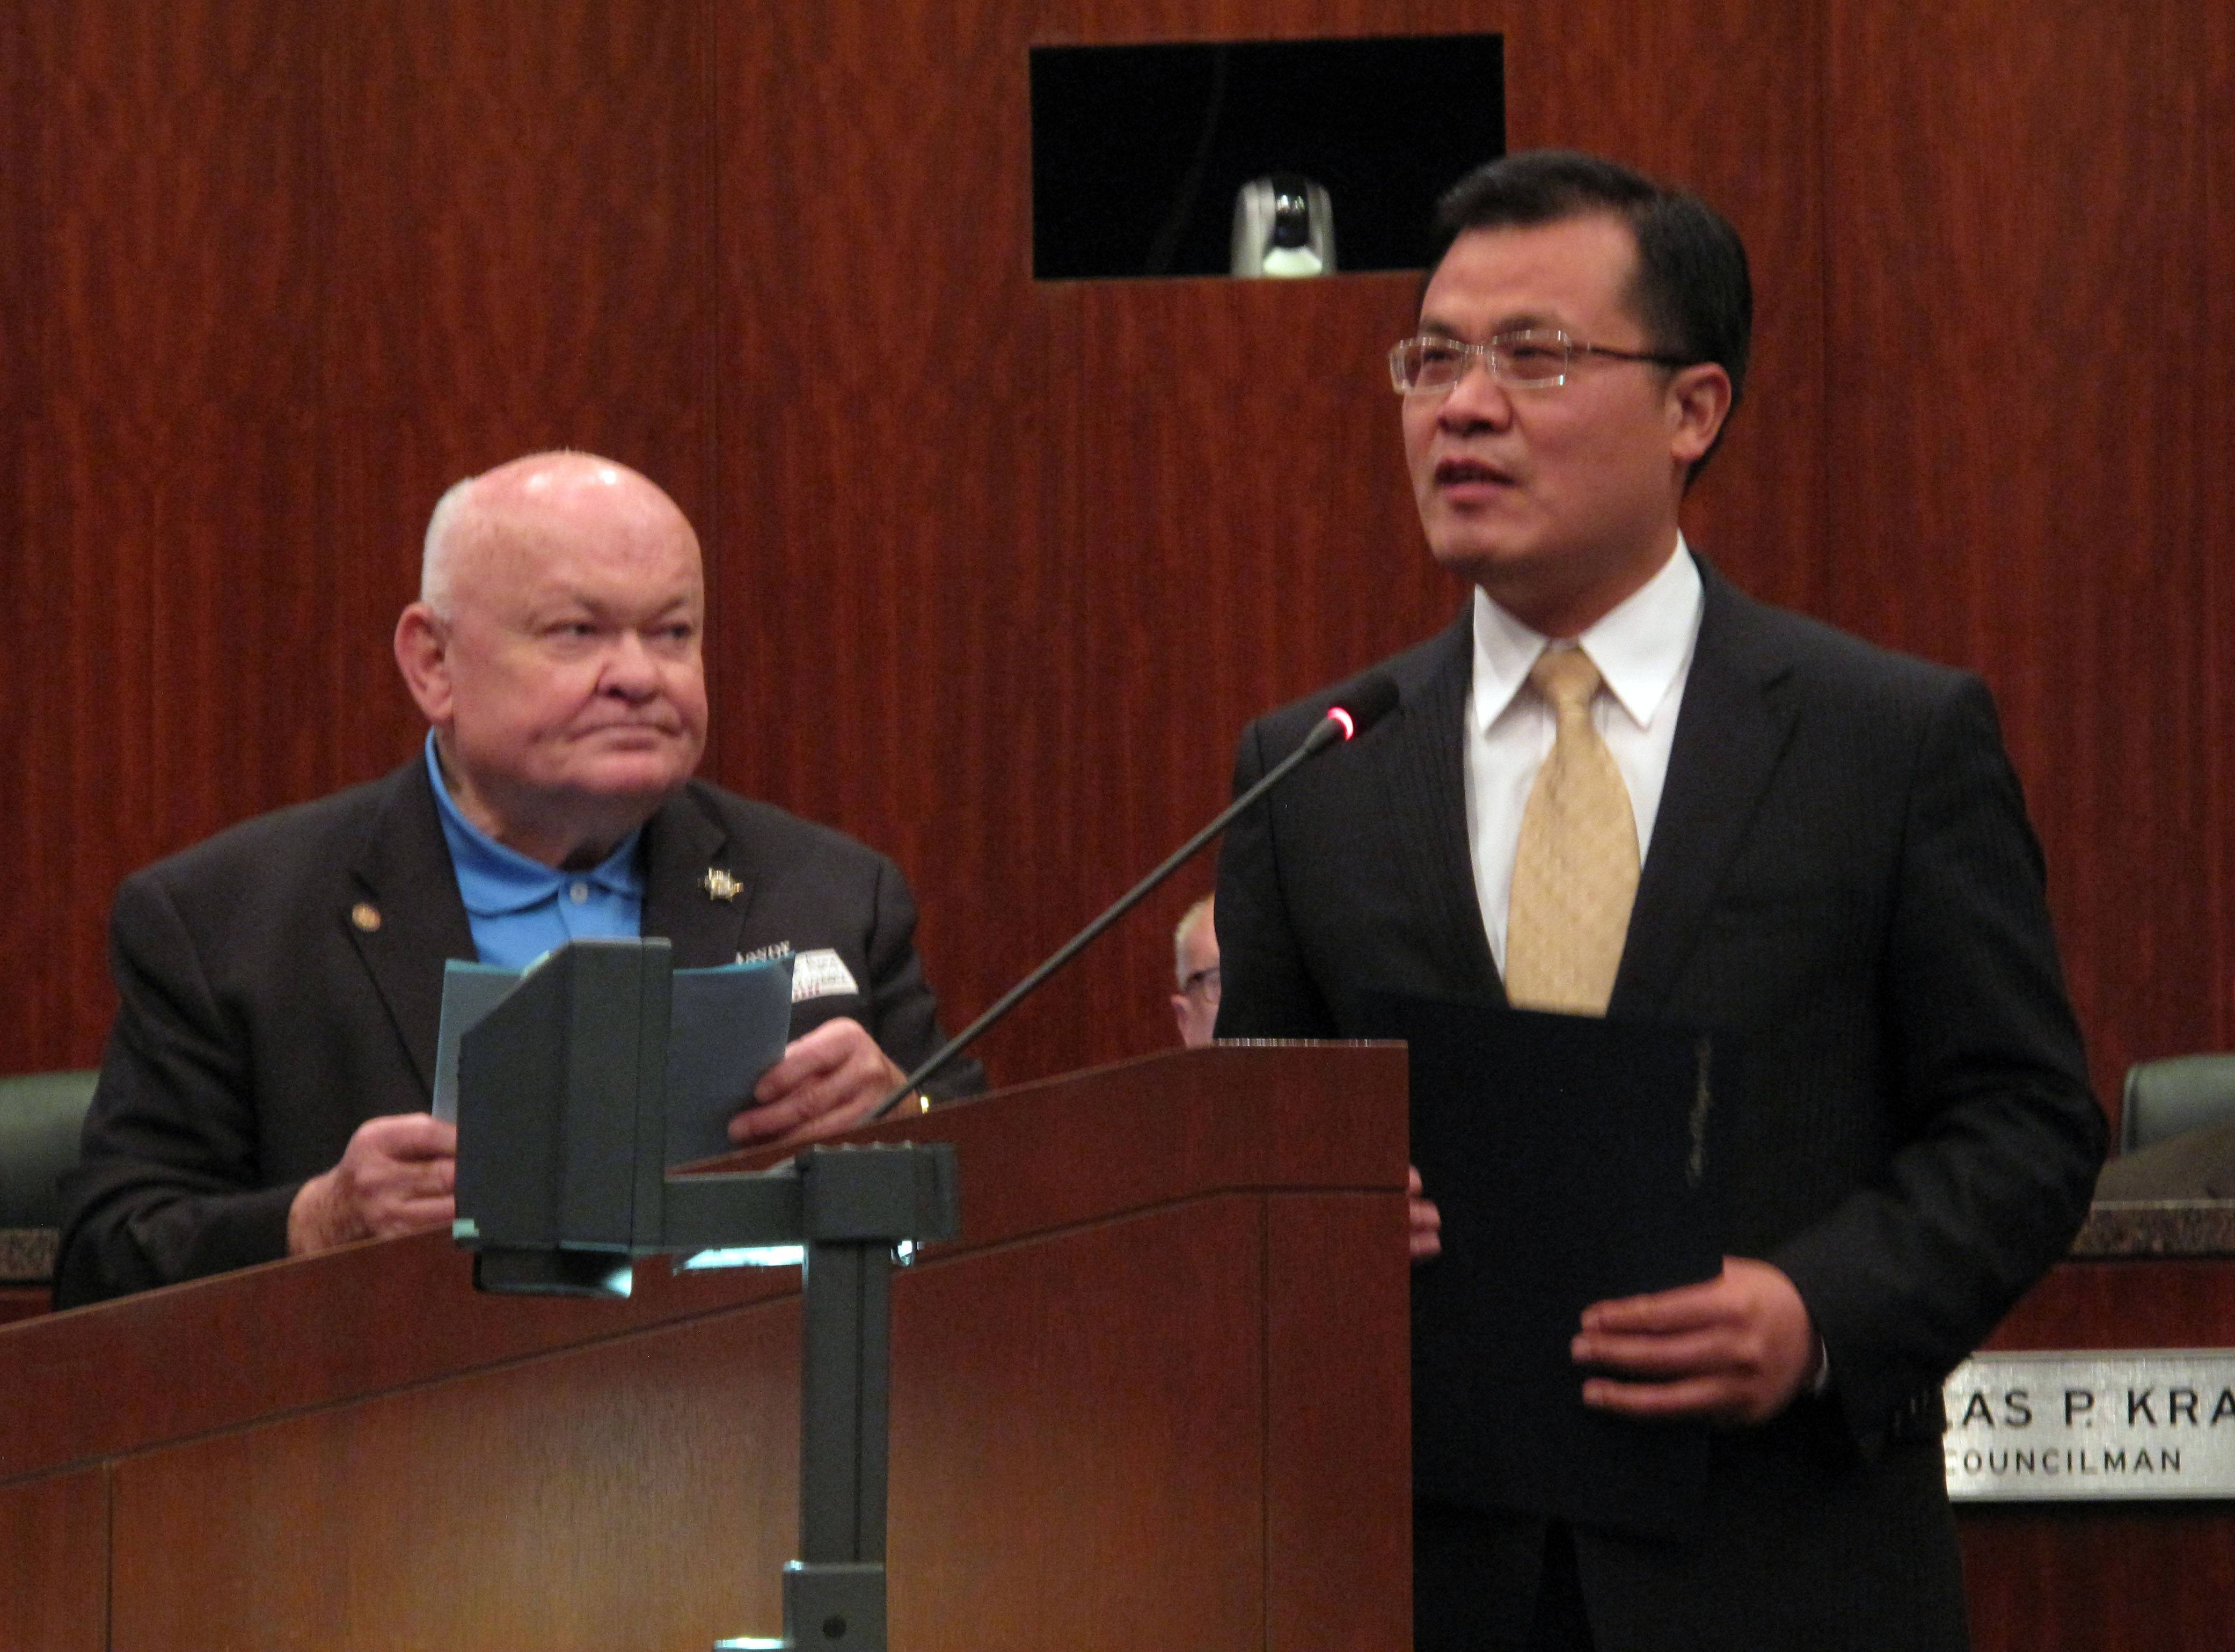 Zhao Weiping, Chinese Consul General for the Chicago district, accepts an honorary citizenship certificate from Naperville Mayor George Pradel. The city welcomed Weiping in an effort to promote friendship and business growth through the Chinese Community Outreach program.